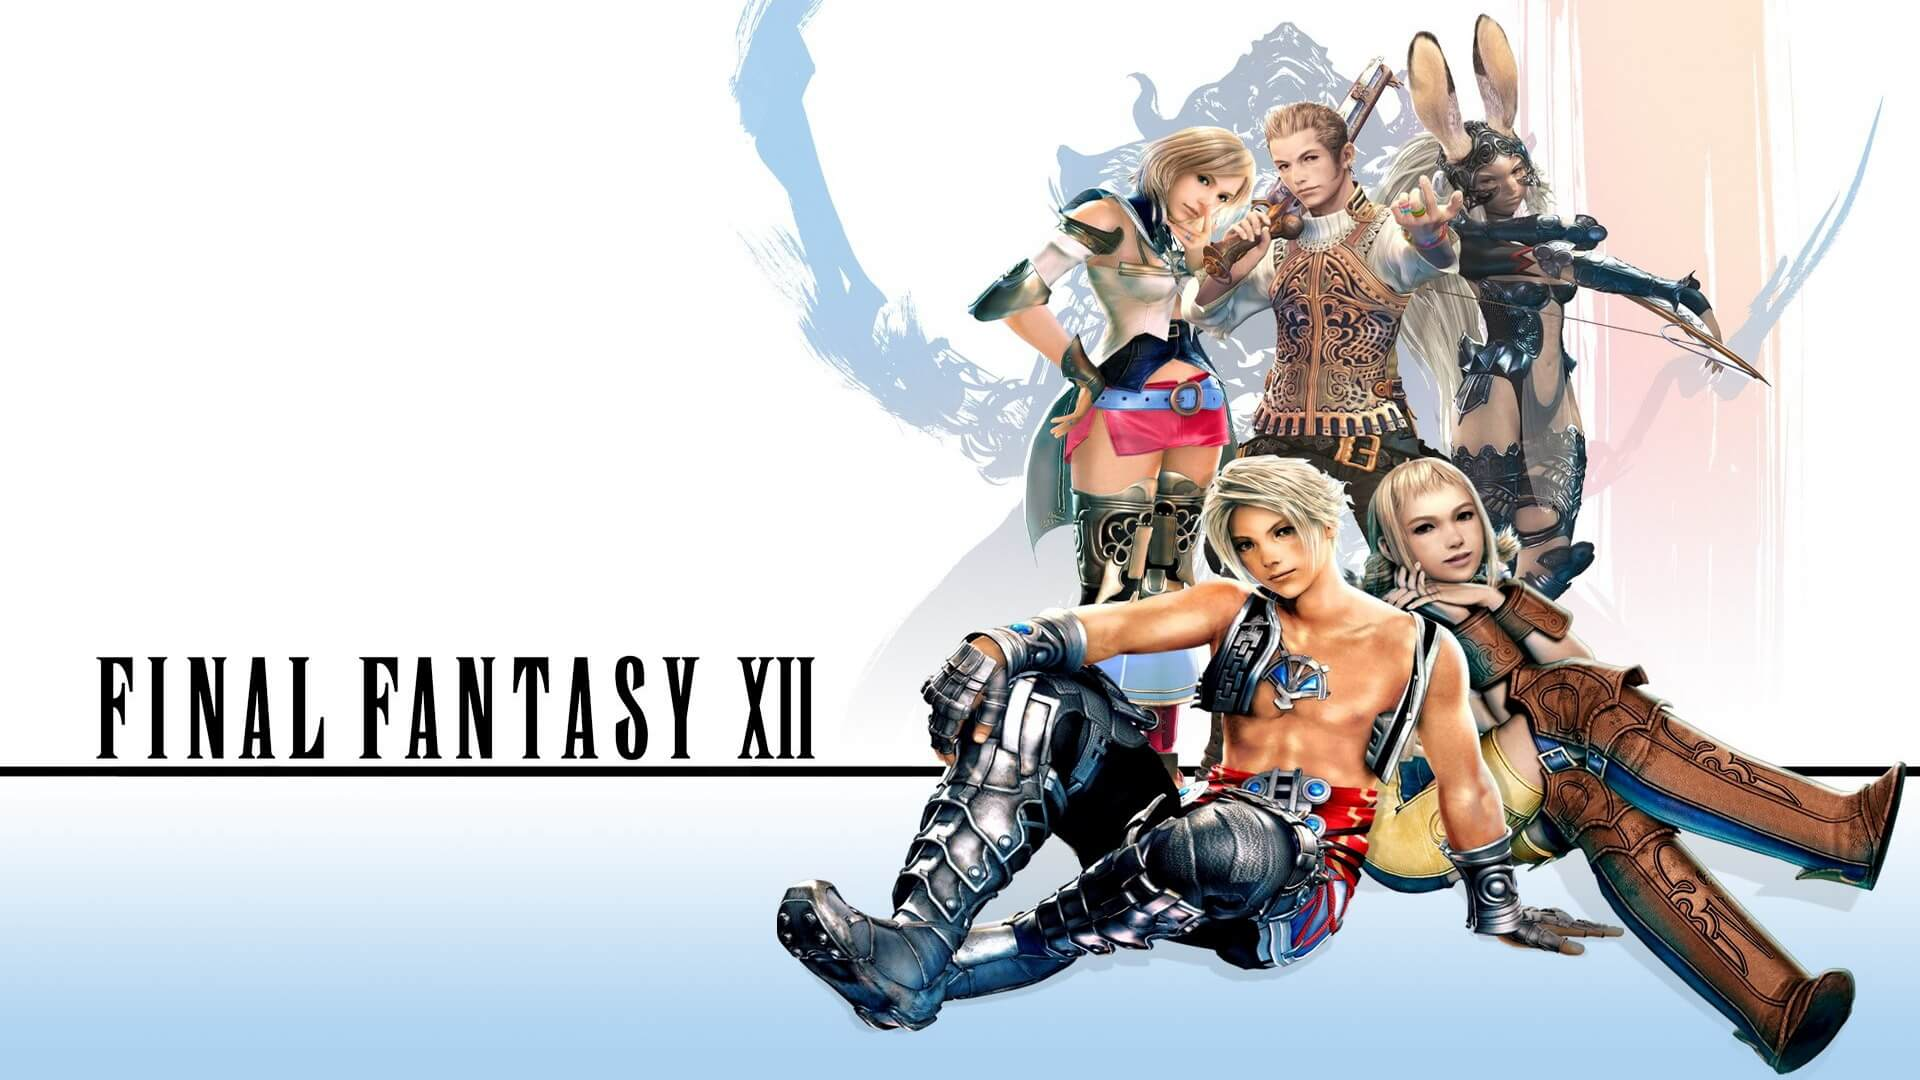 Final Fantasy XII Remake/Remaster?